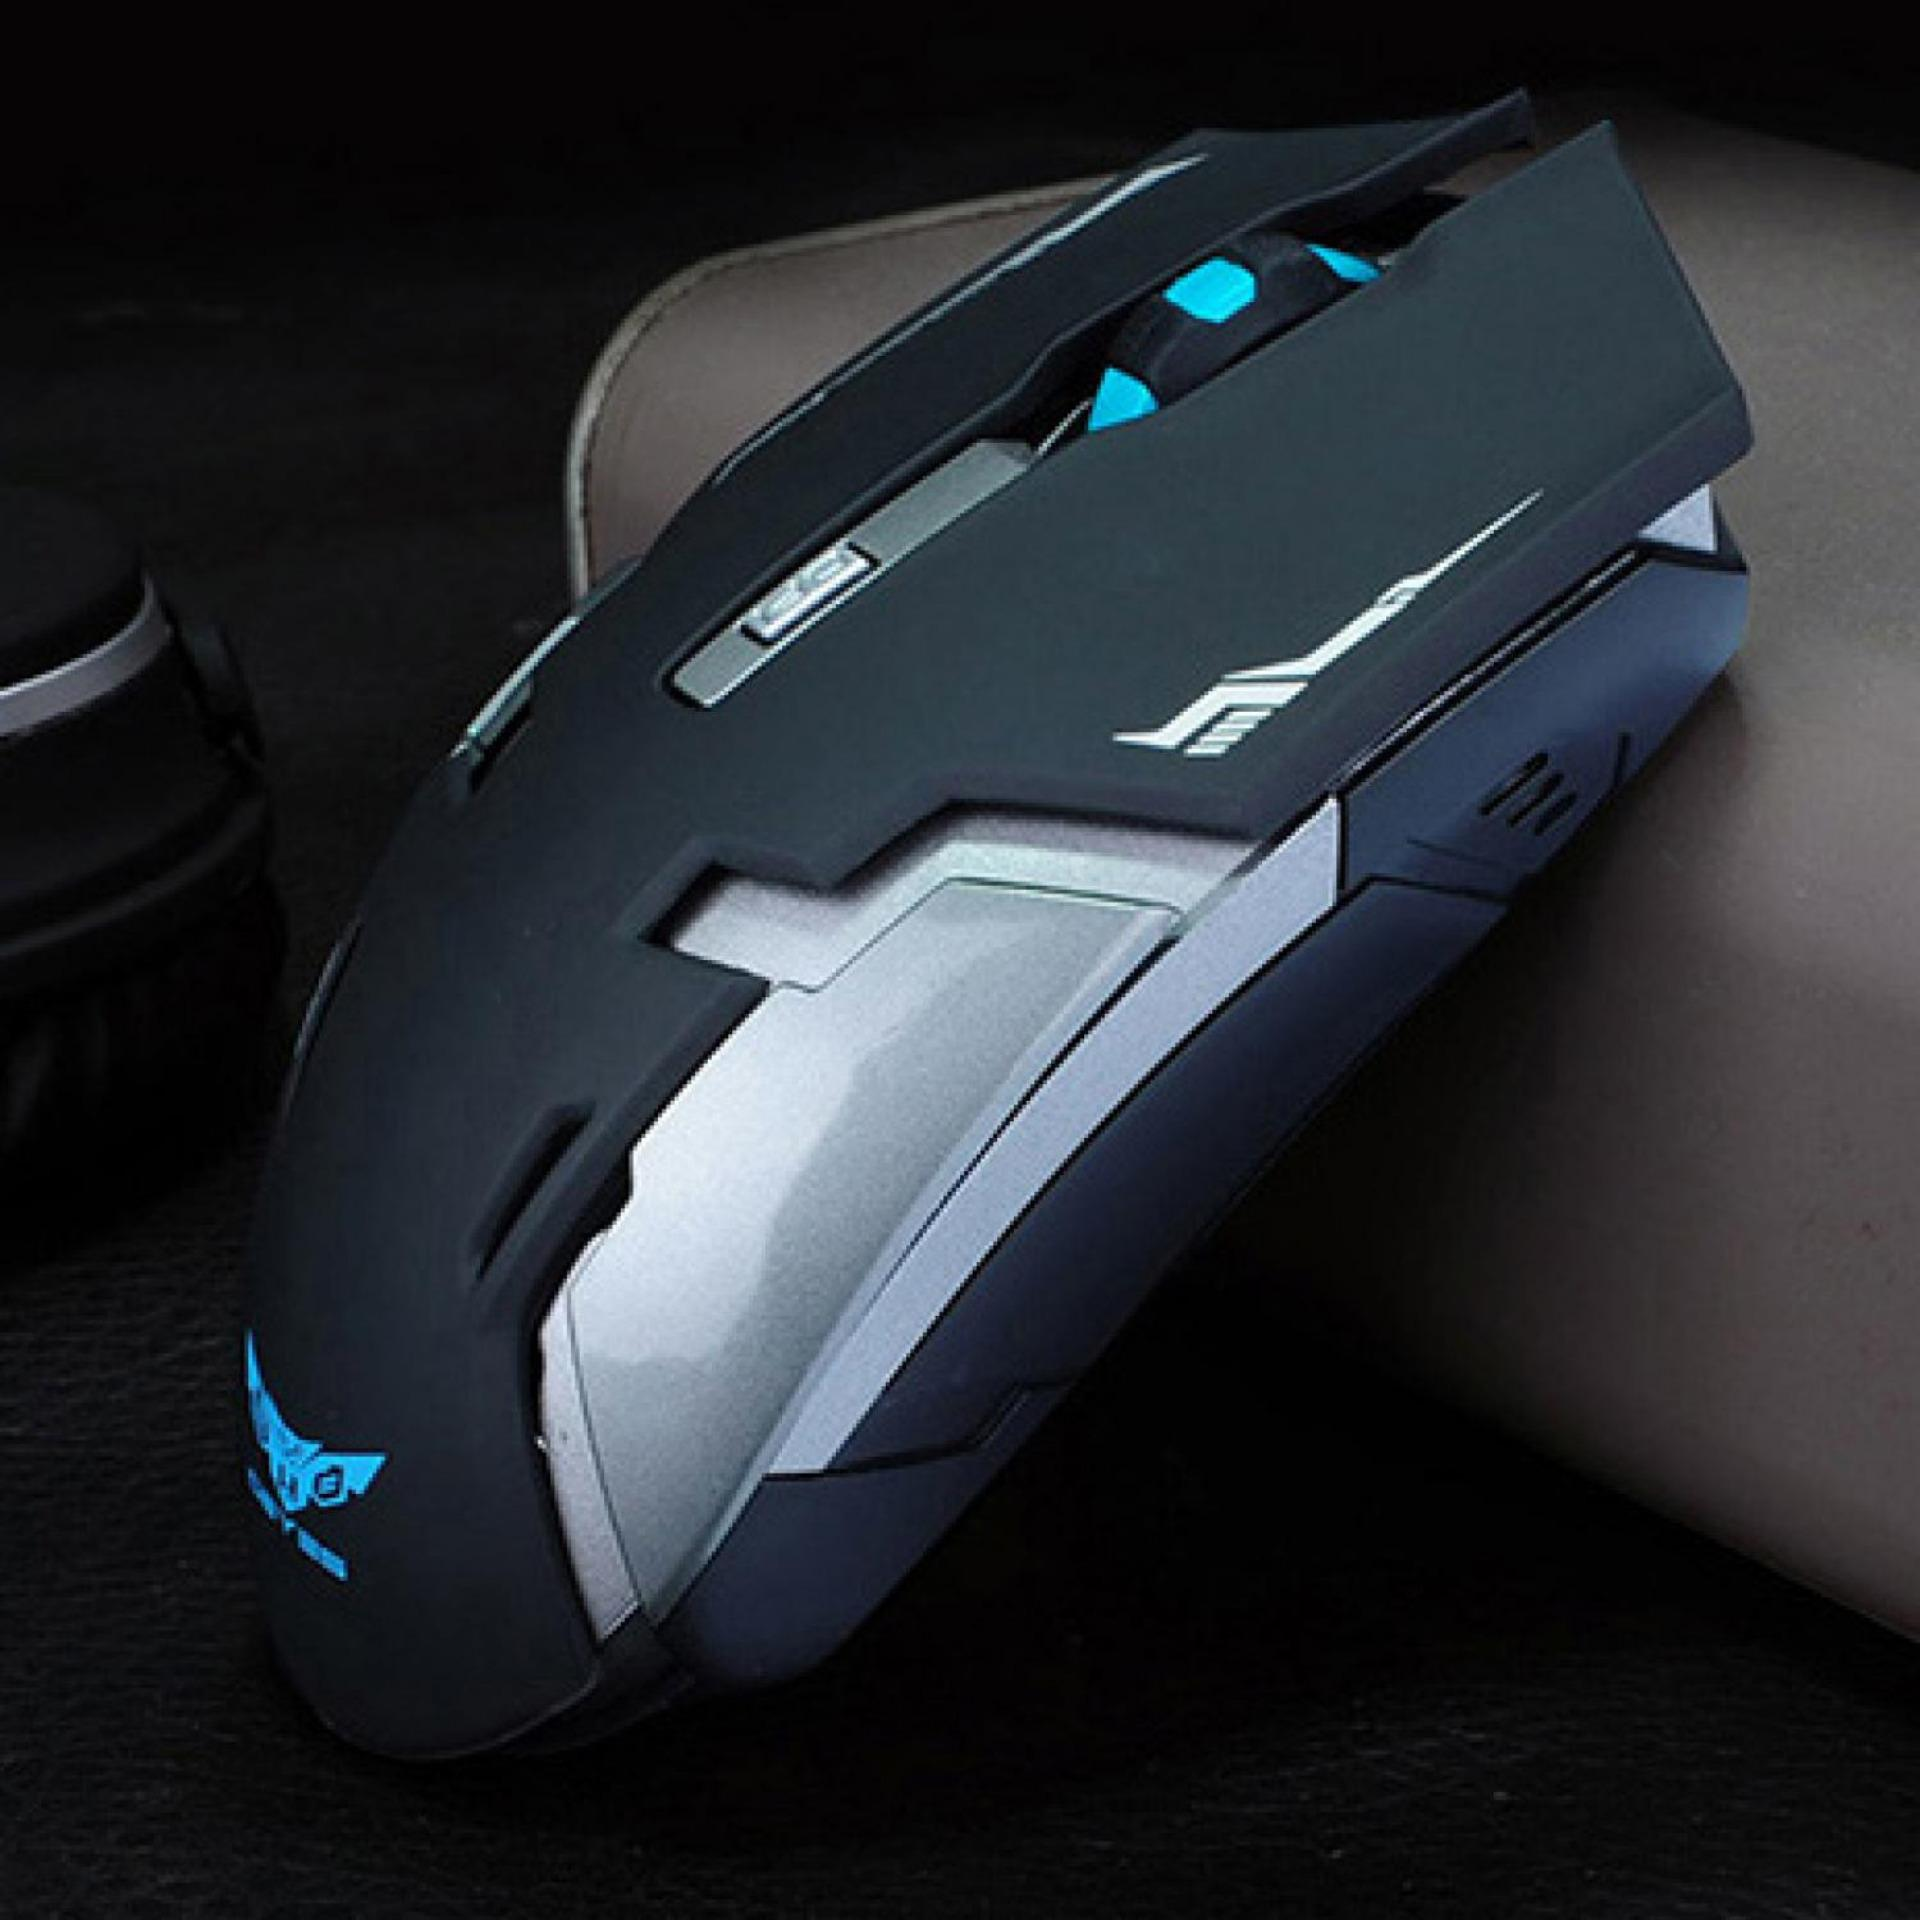 Review Toko Rechargeable Wireless Usb Gaming Mouse 1600 Dpi Black Online